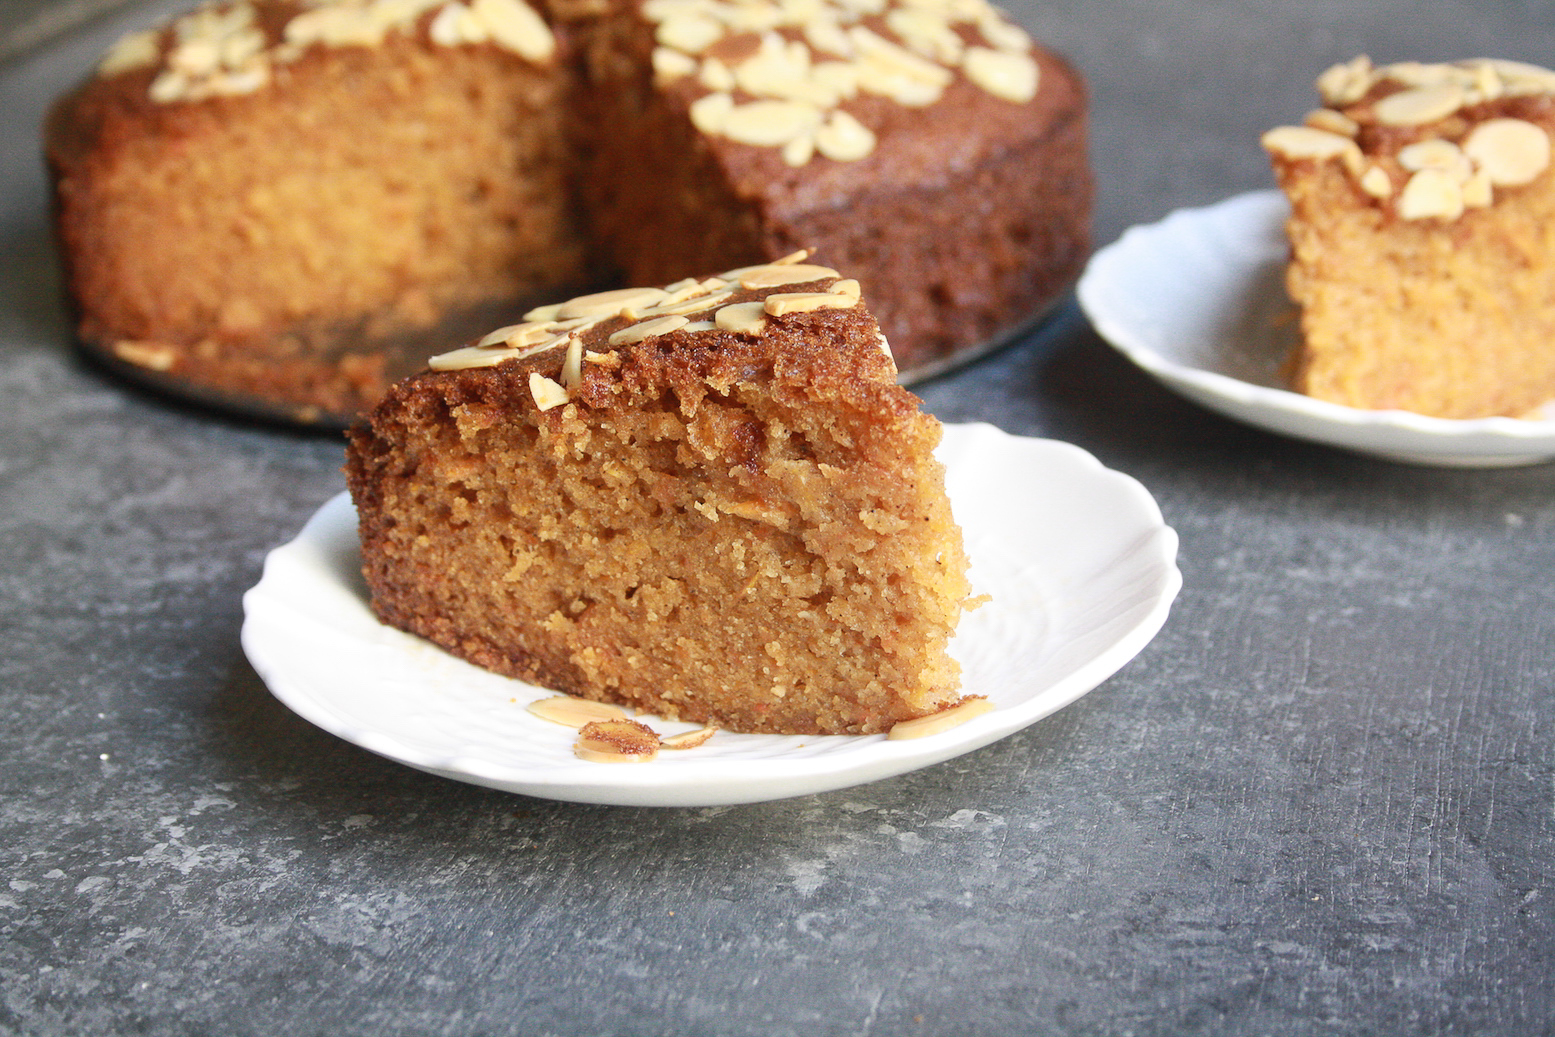 A super moist carrot cake filled with all sorts of warming winter spices for a classic addition to your festive table!